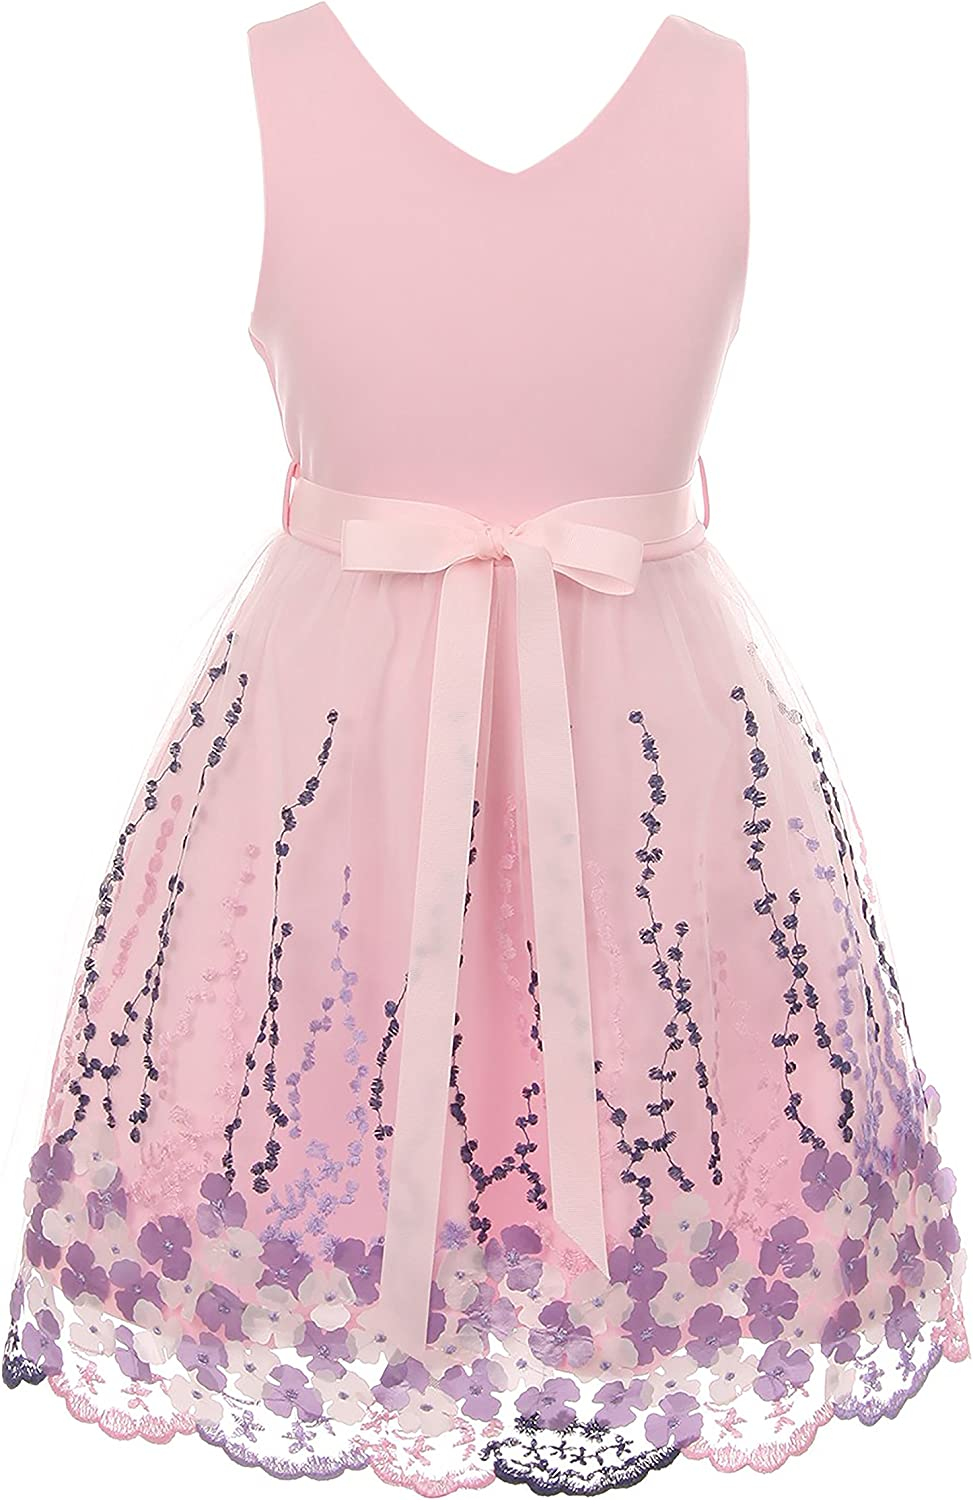 Solid Top Beautiful Flower Embroidery Flower Girl Dress for Girls